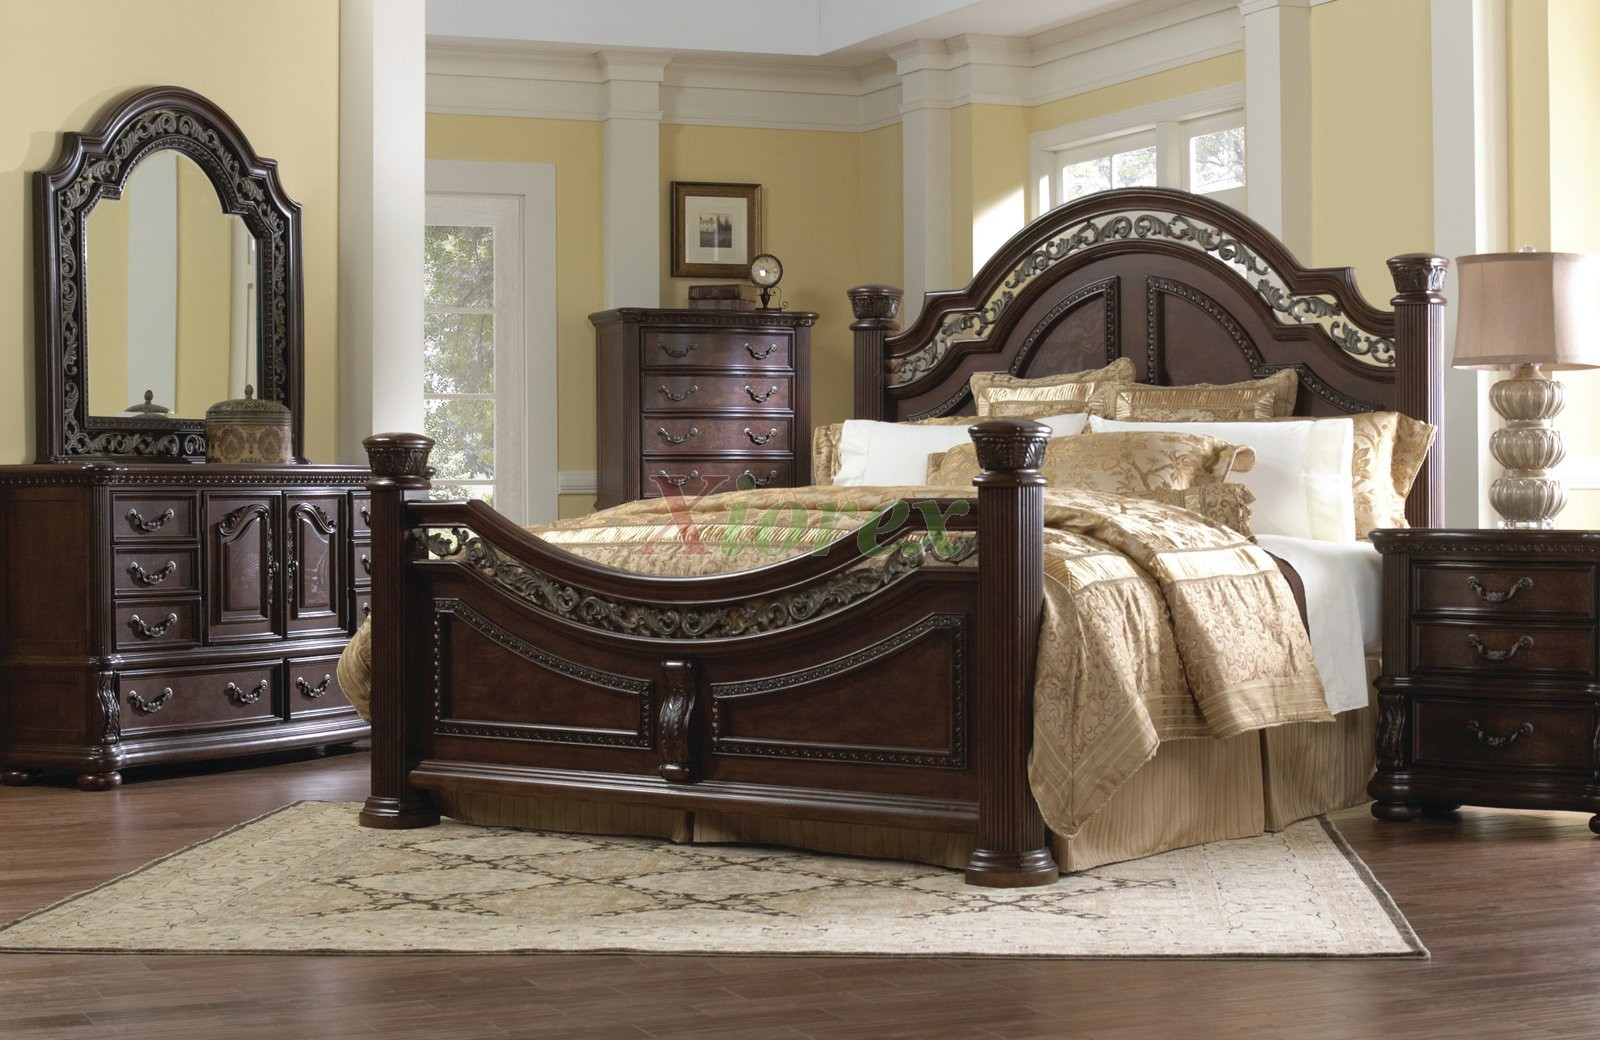 Modern traditional bedroom furniture - Traditional Bedroom Furniture Set W Arched Headboard Beds 107xiorex